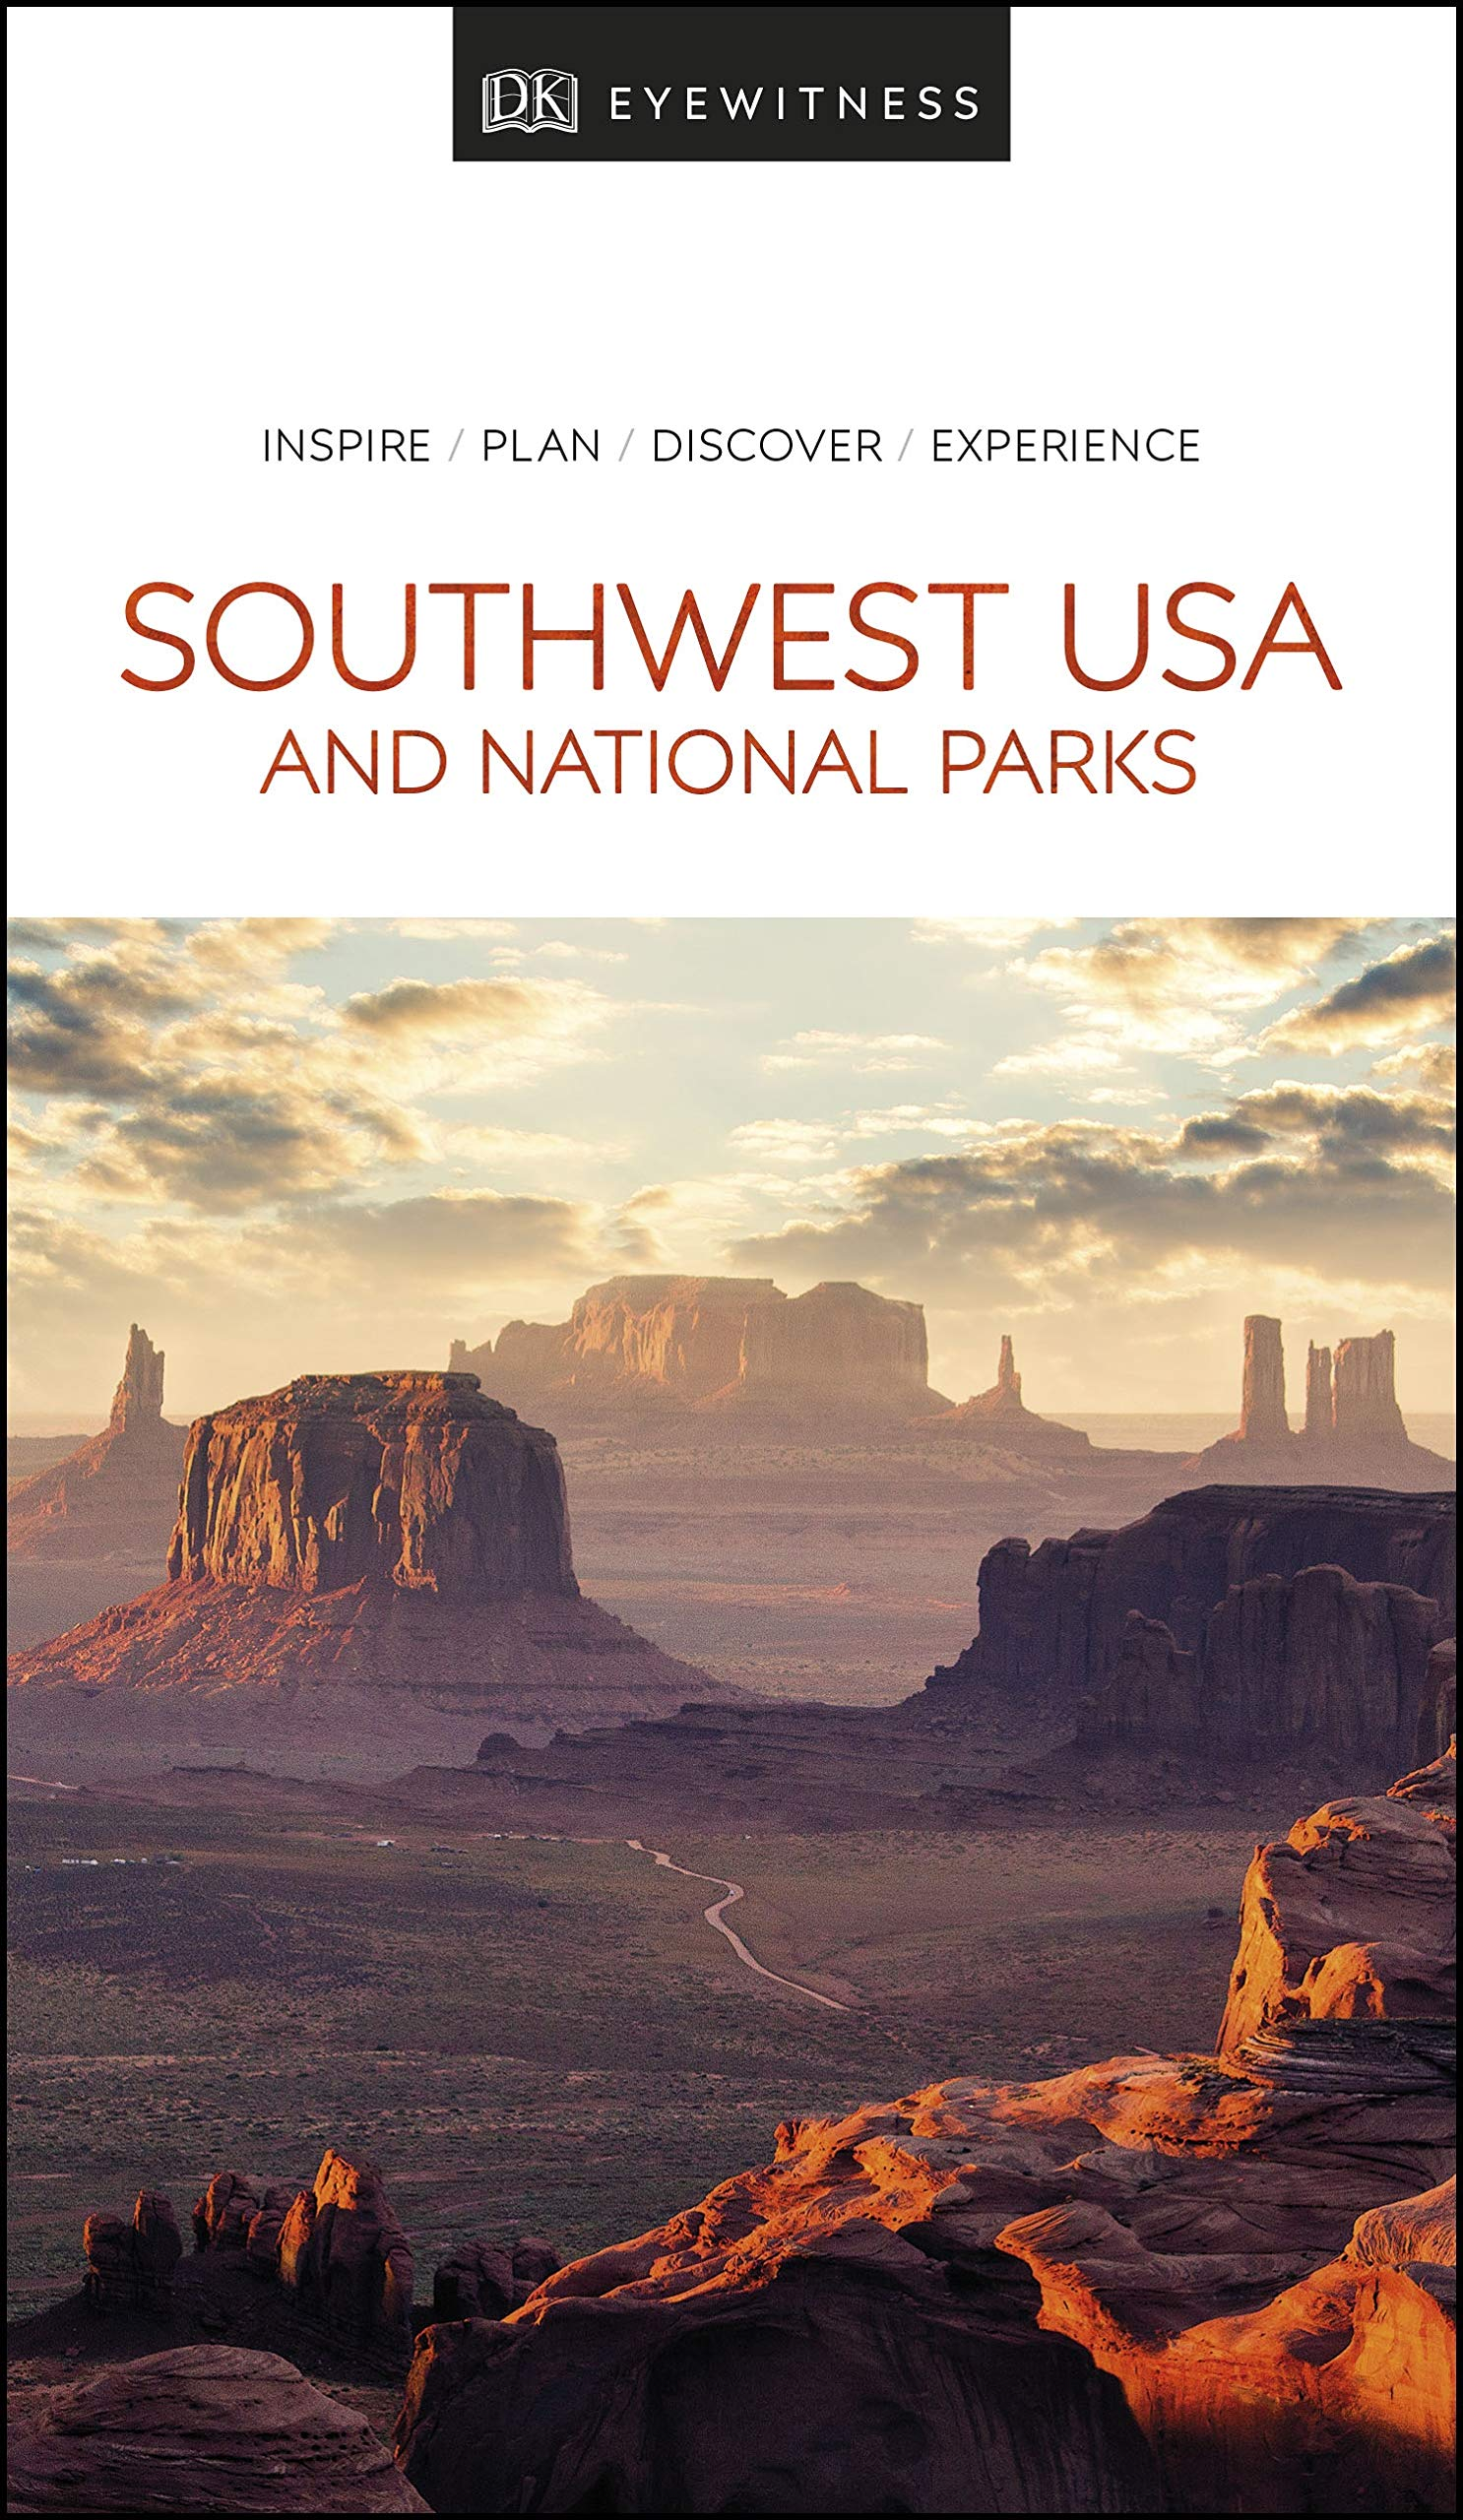 Southwest USA and National Parks